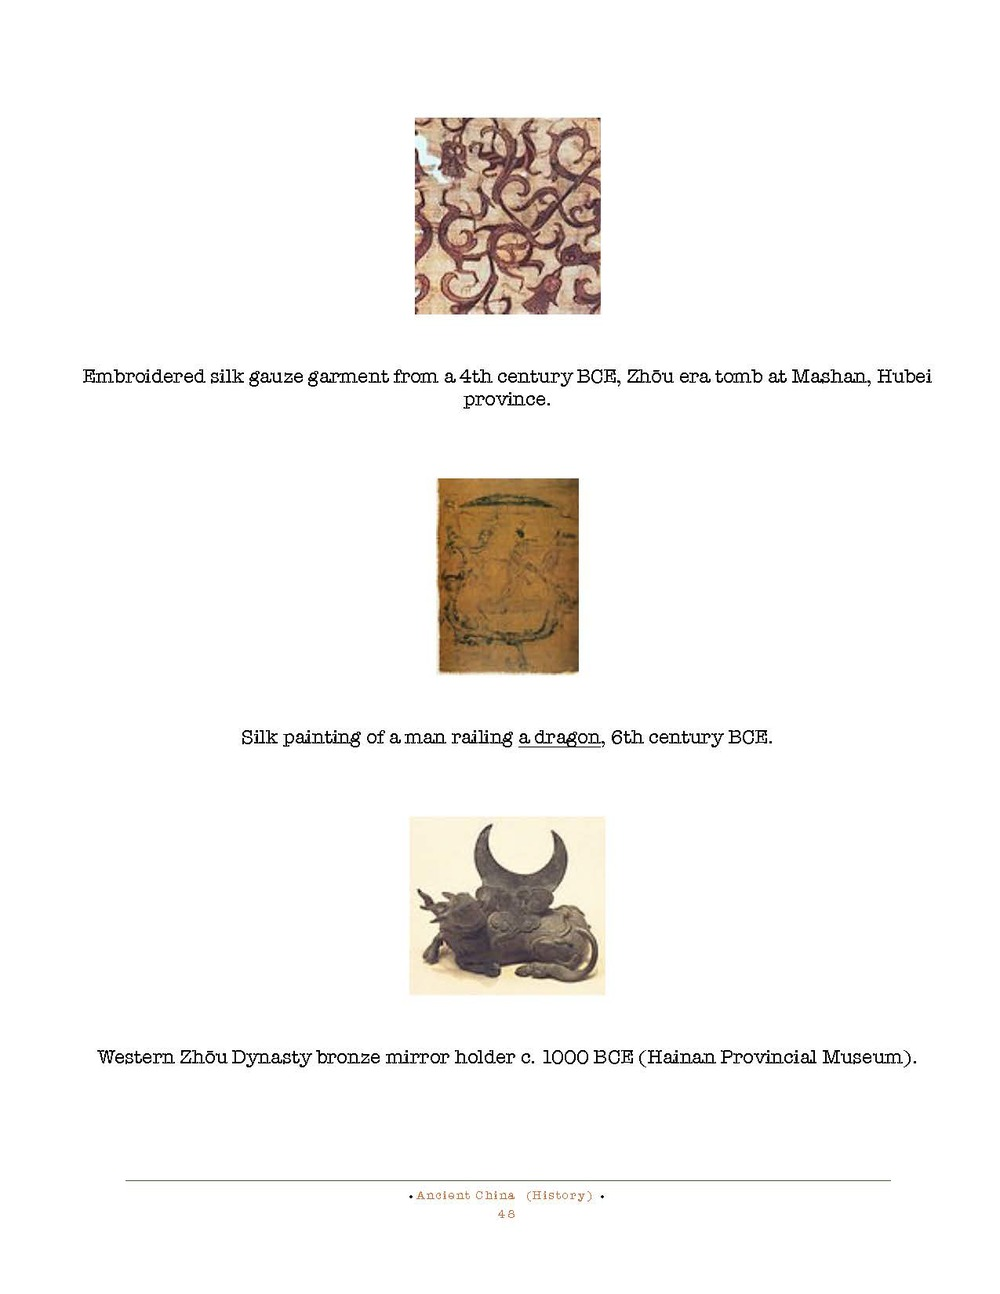 HOCE- Ancient China Notes_Page_048.jpg